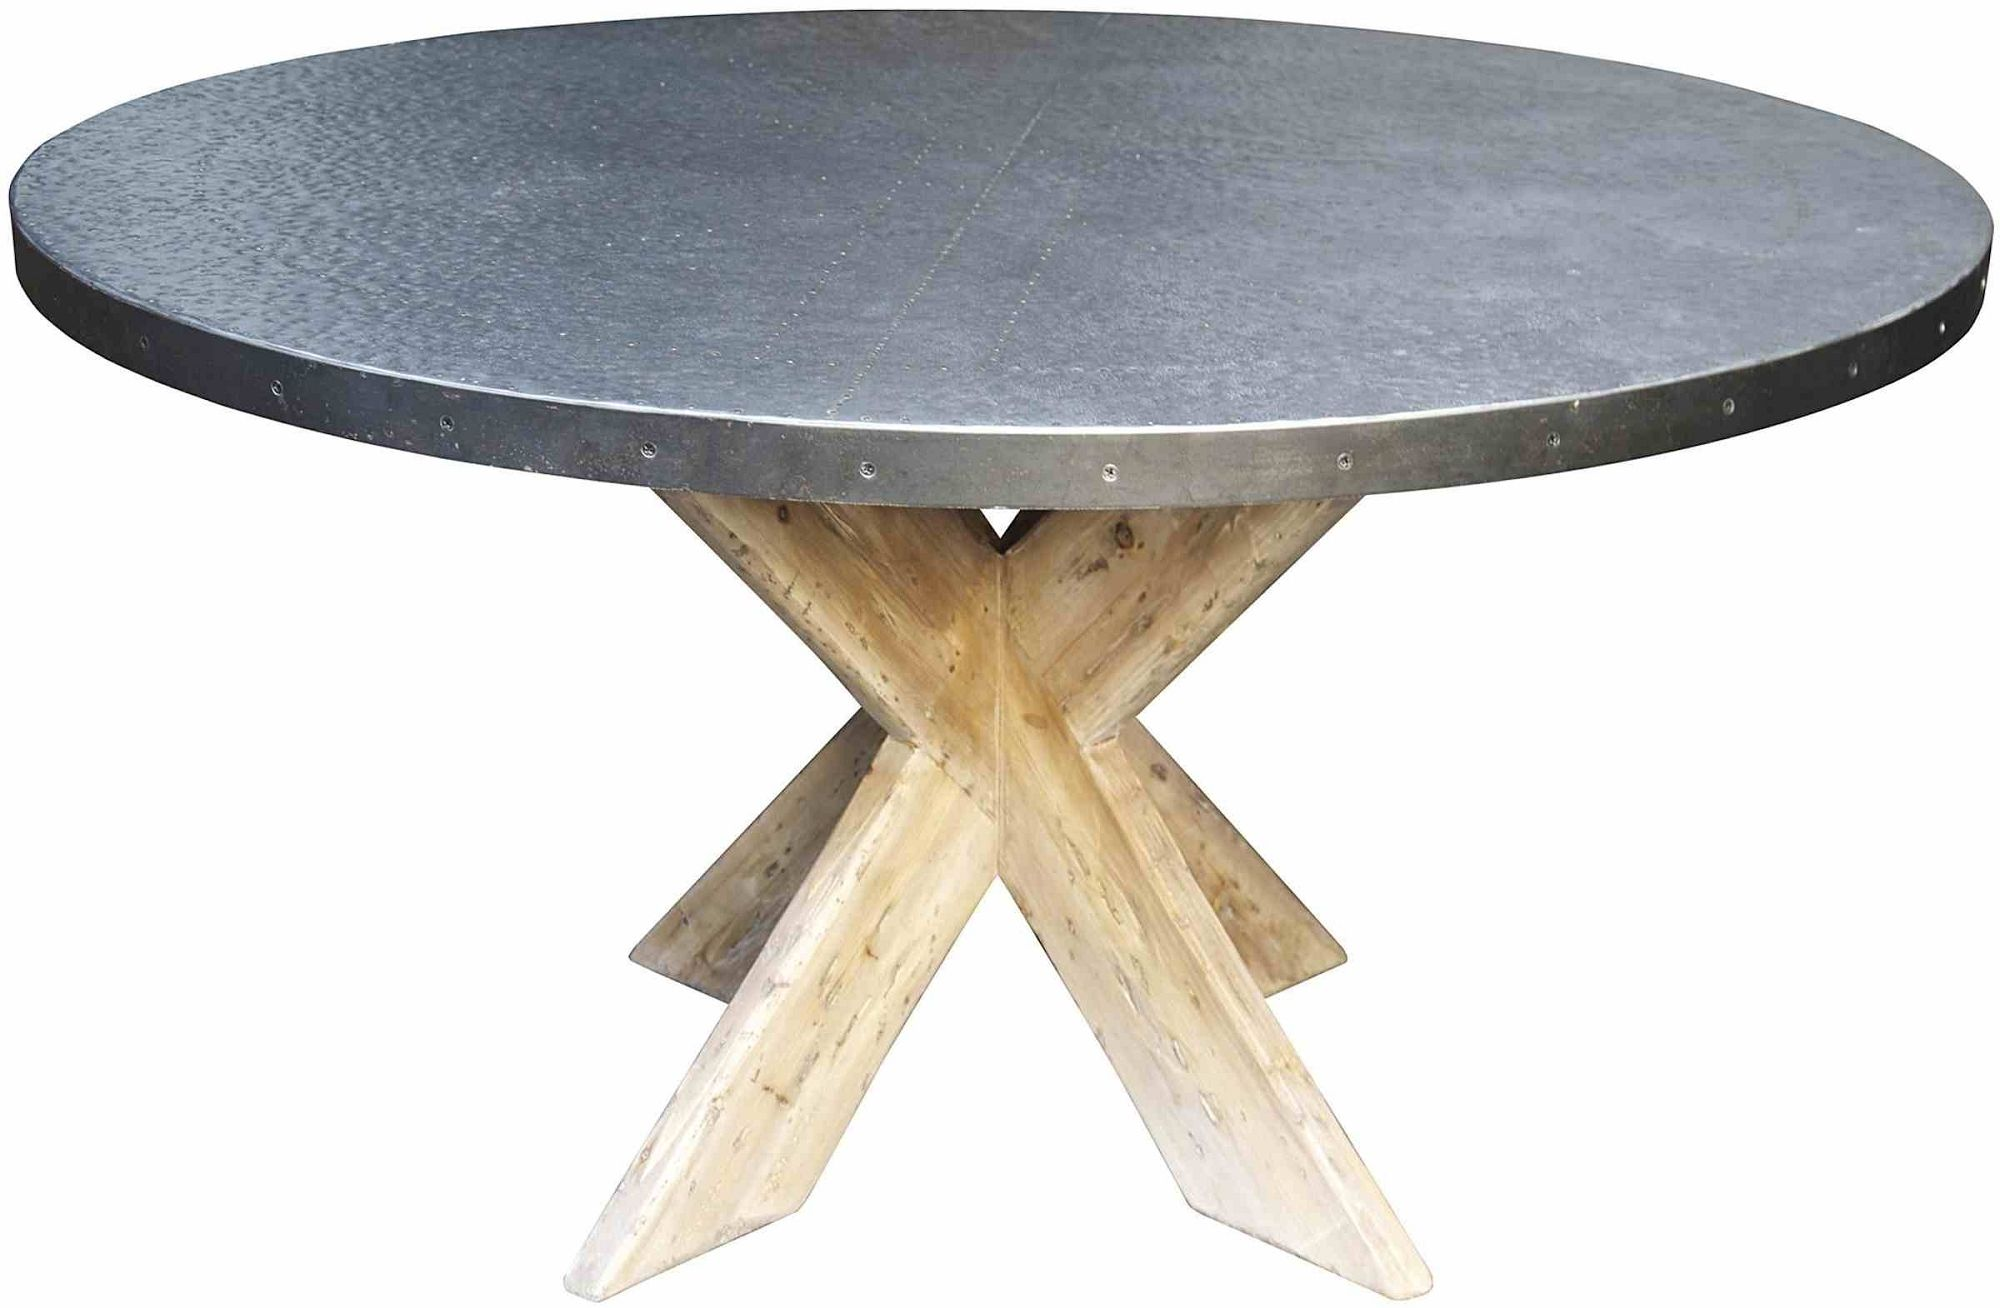 Hayward Zinc Top Round Dining Table With X Base Round  : 62f267546719696e0cb3f9a733c3a801 from www.pinterest.com size 2000 x 1308 jpeg 668kB